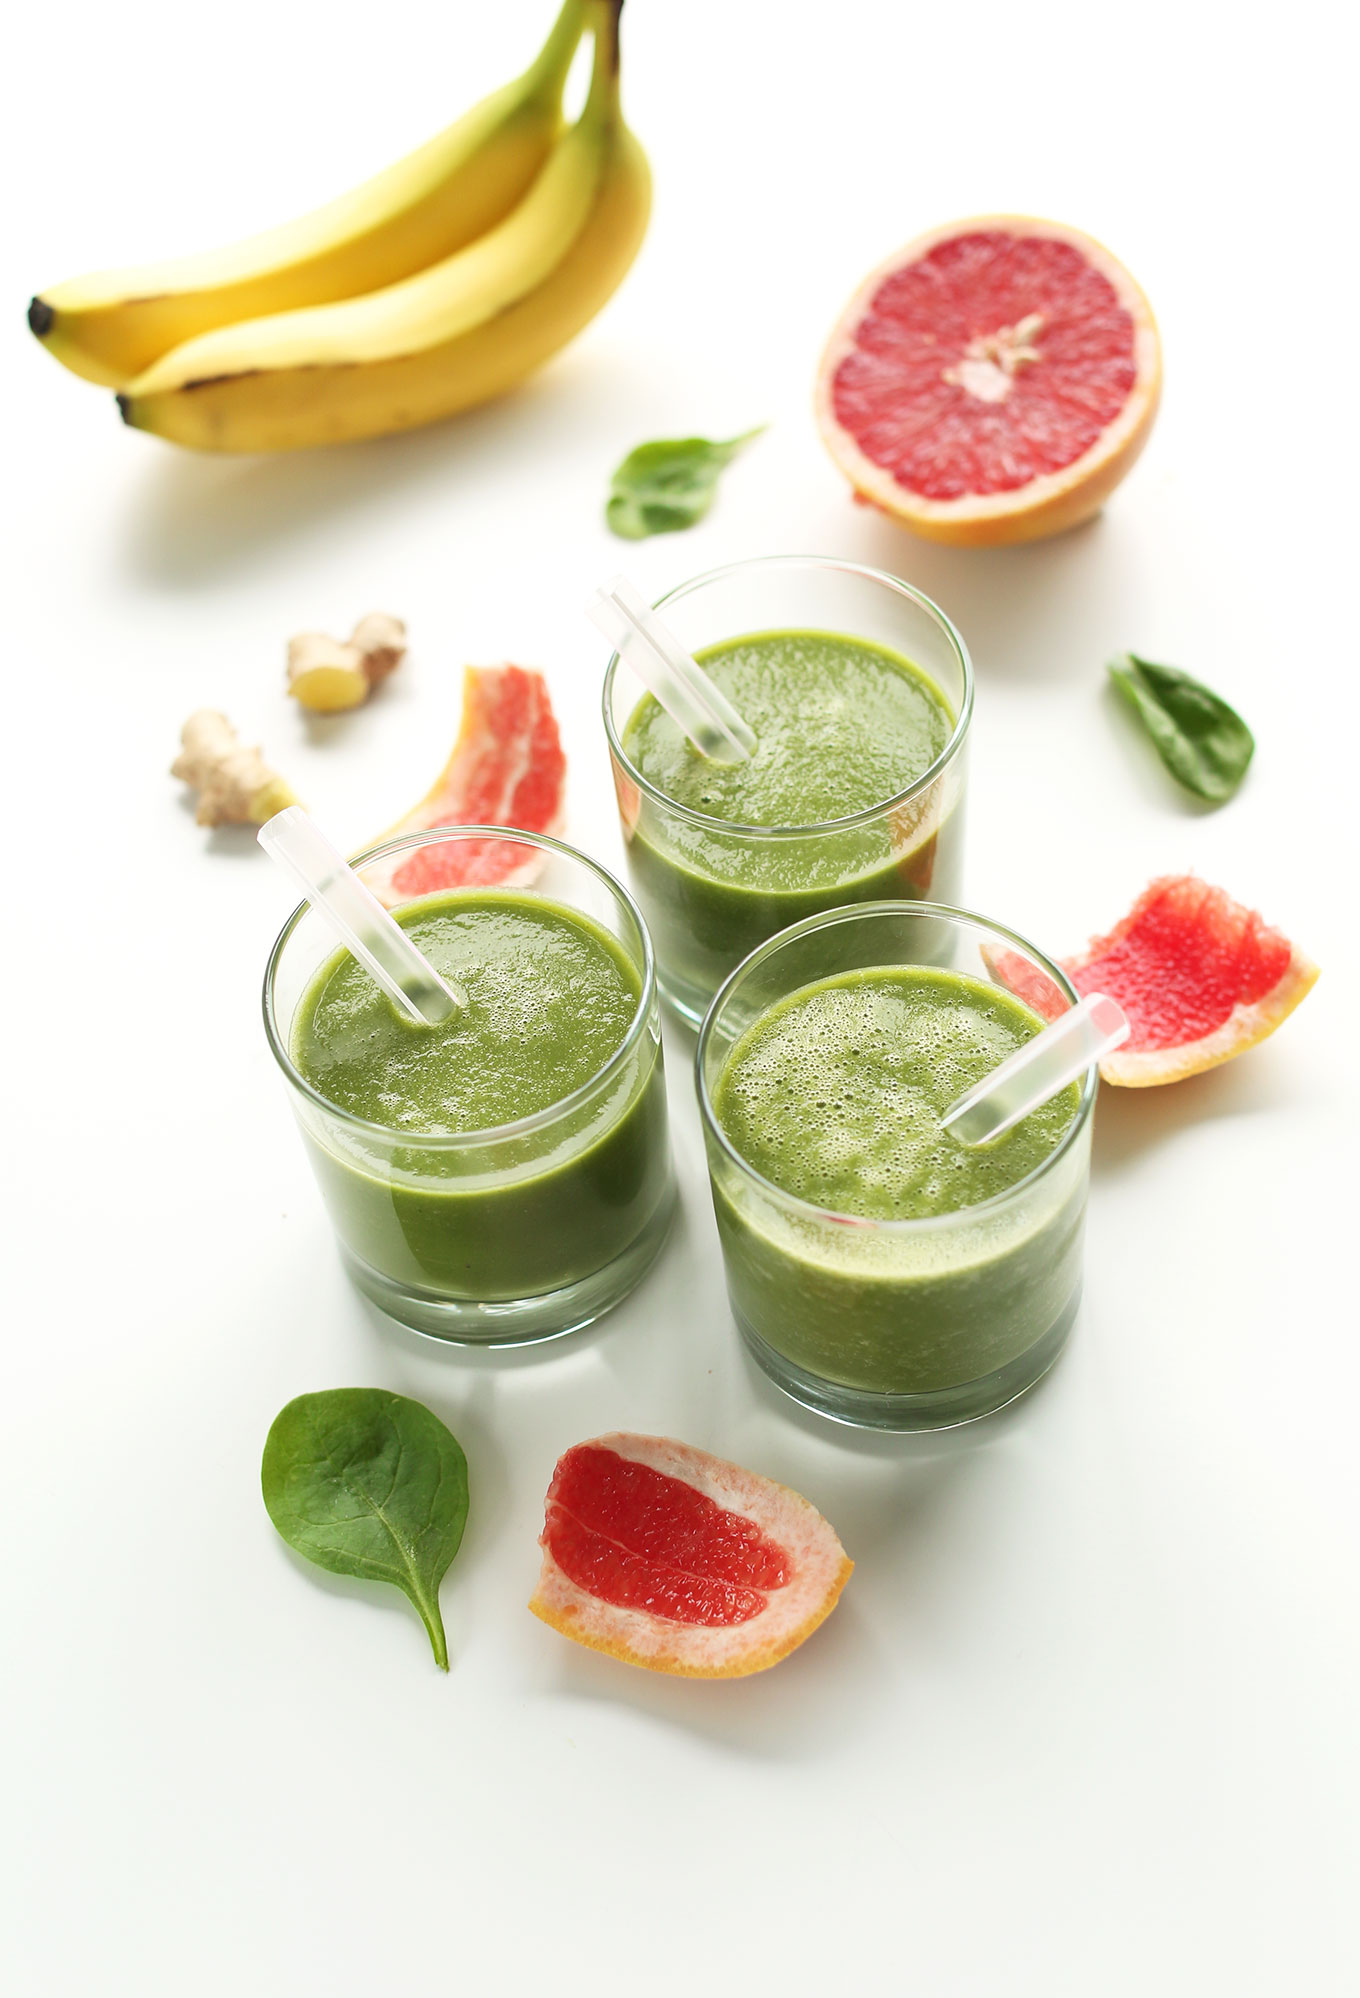 Glasses of our gluten-free vegan Grapefruit Green Smoothie surrounded by ingredients used to make the recipe